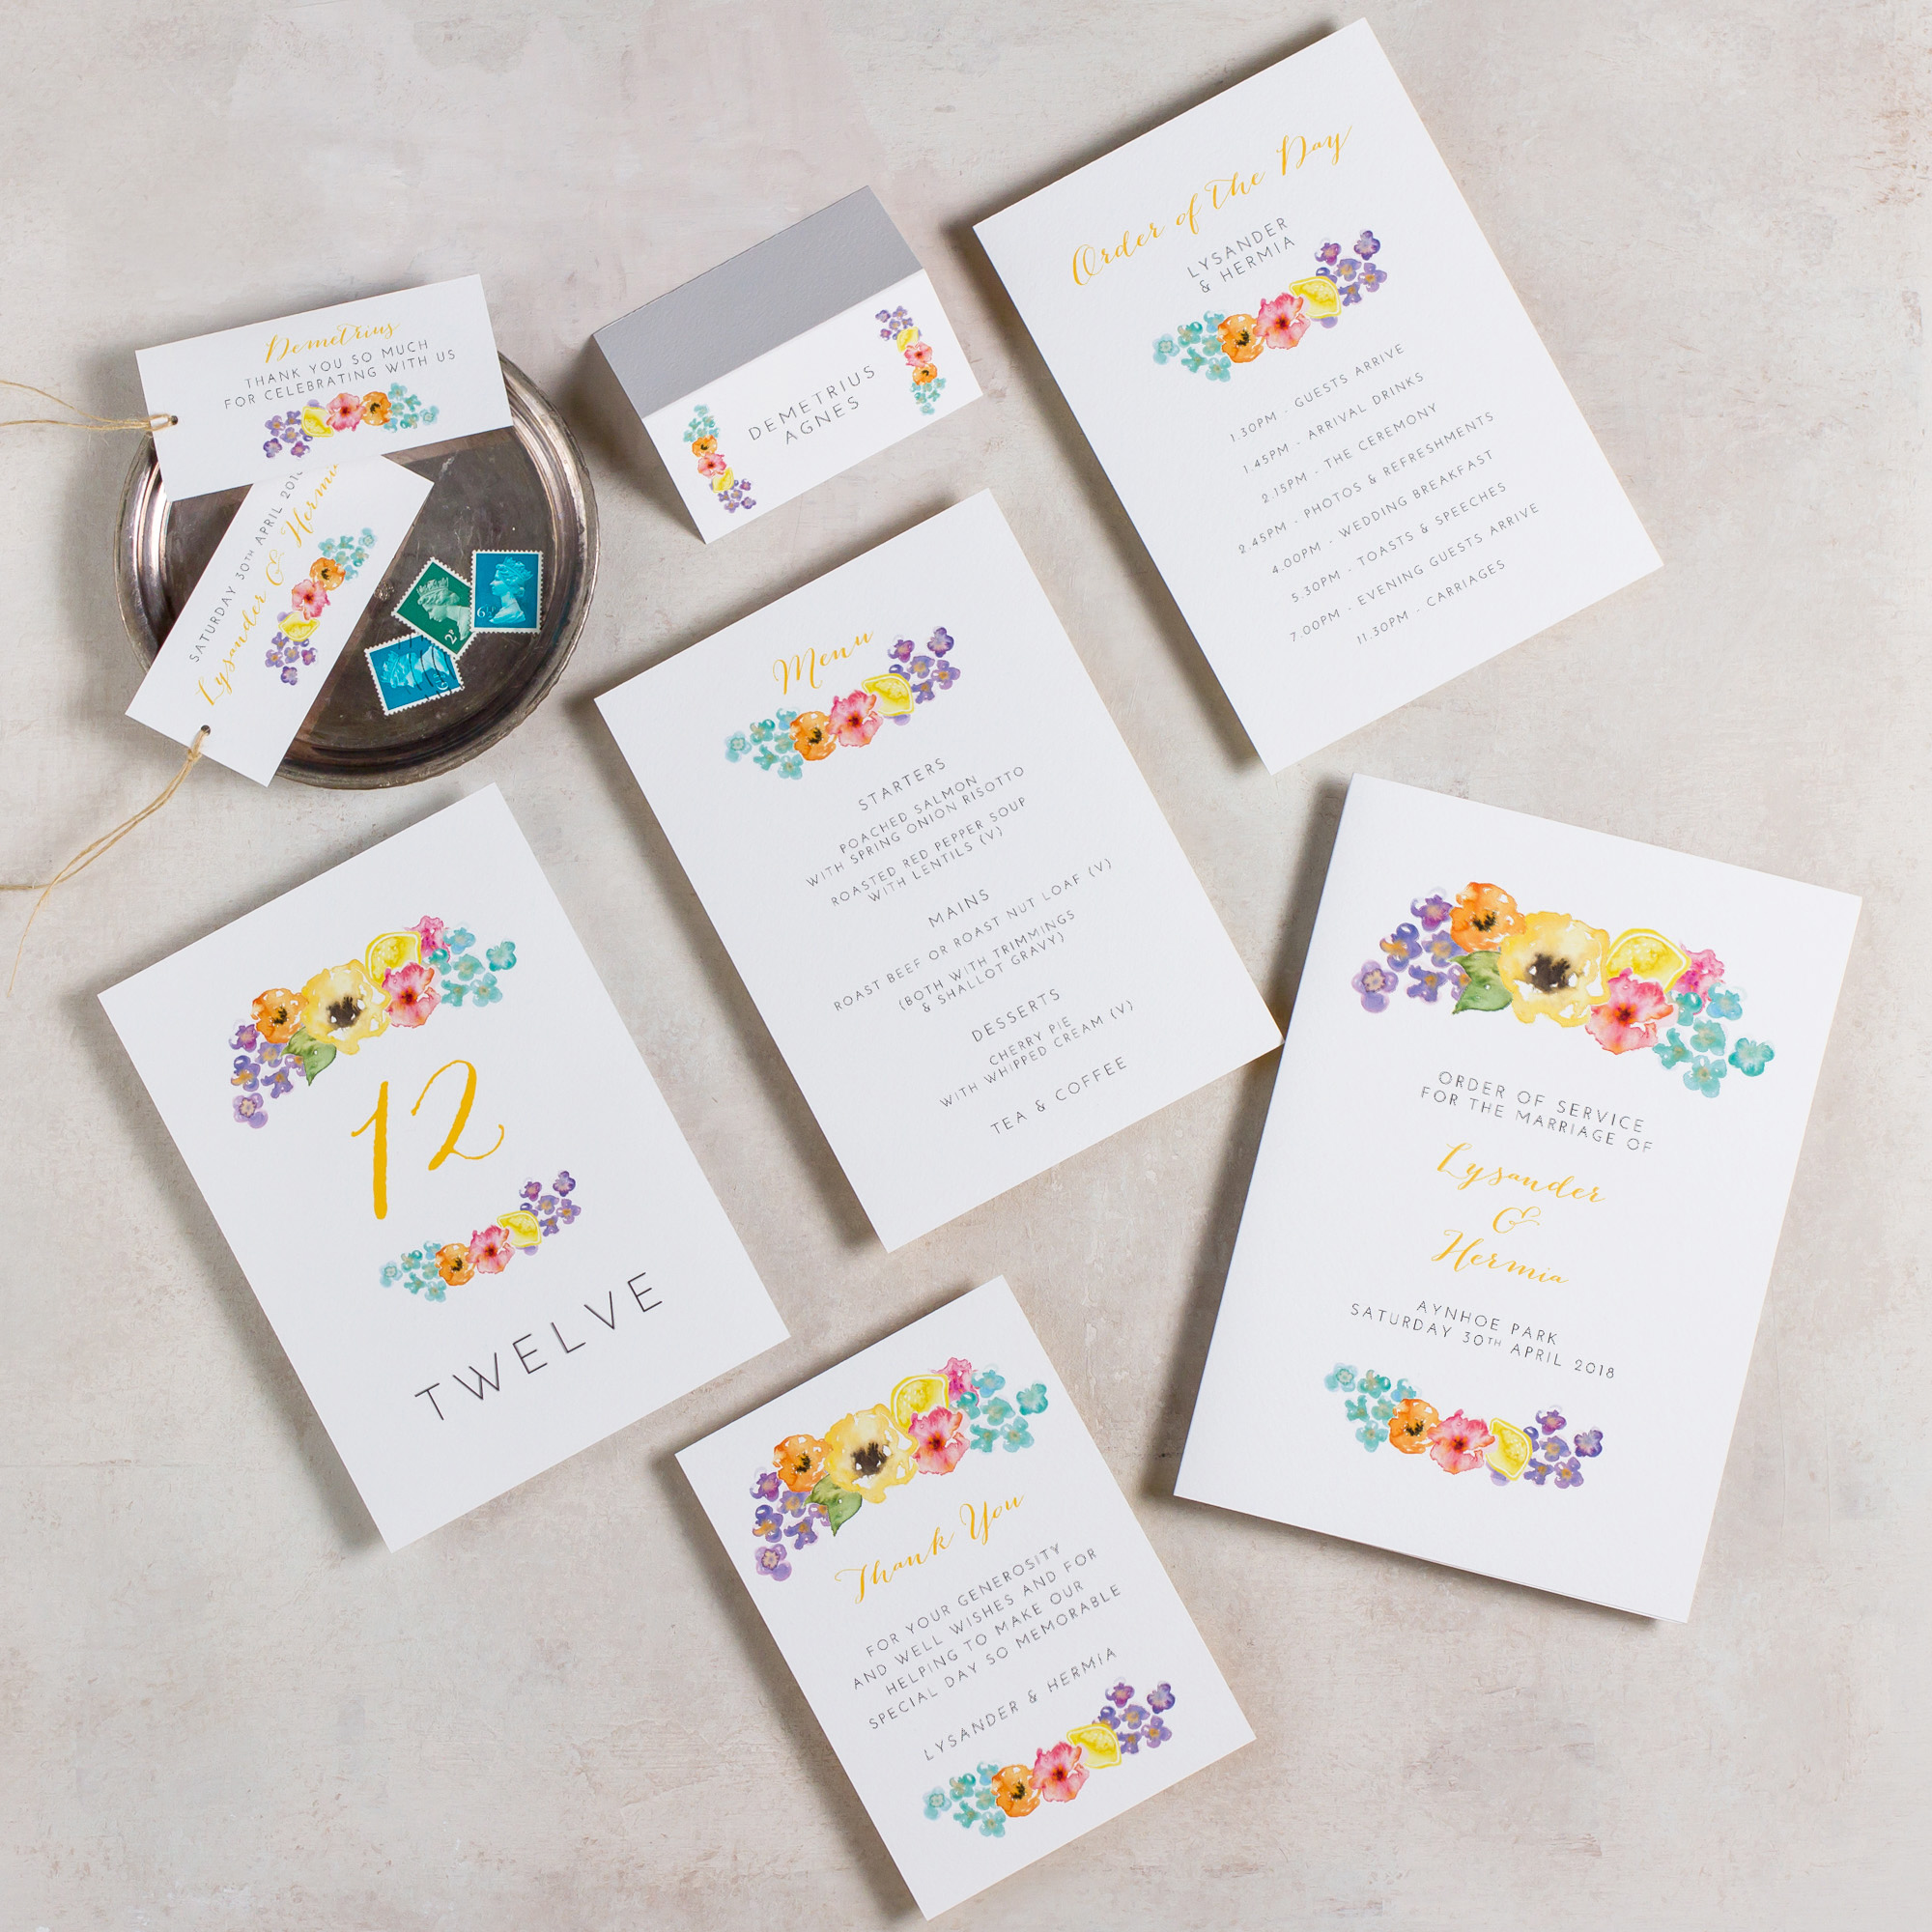 Summery-Wedding-Stationery-Luxury-Unique-Hand-Painted-Floral-Bright-Yellow-Wedding-On-The-Day-Collection-Rising-Sun-Pingle-Pie.jpg